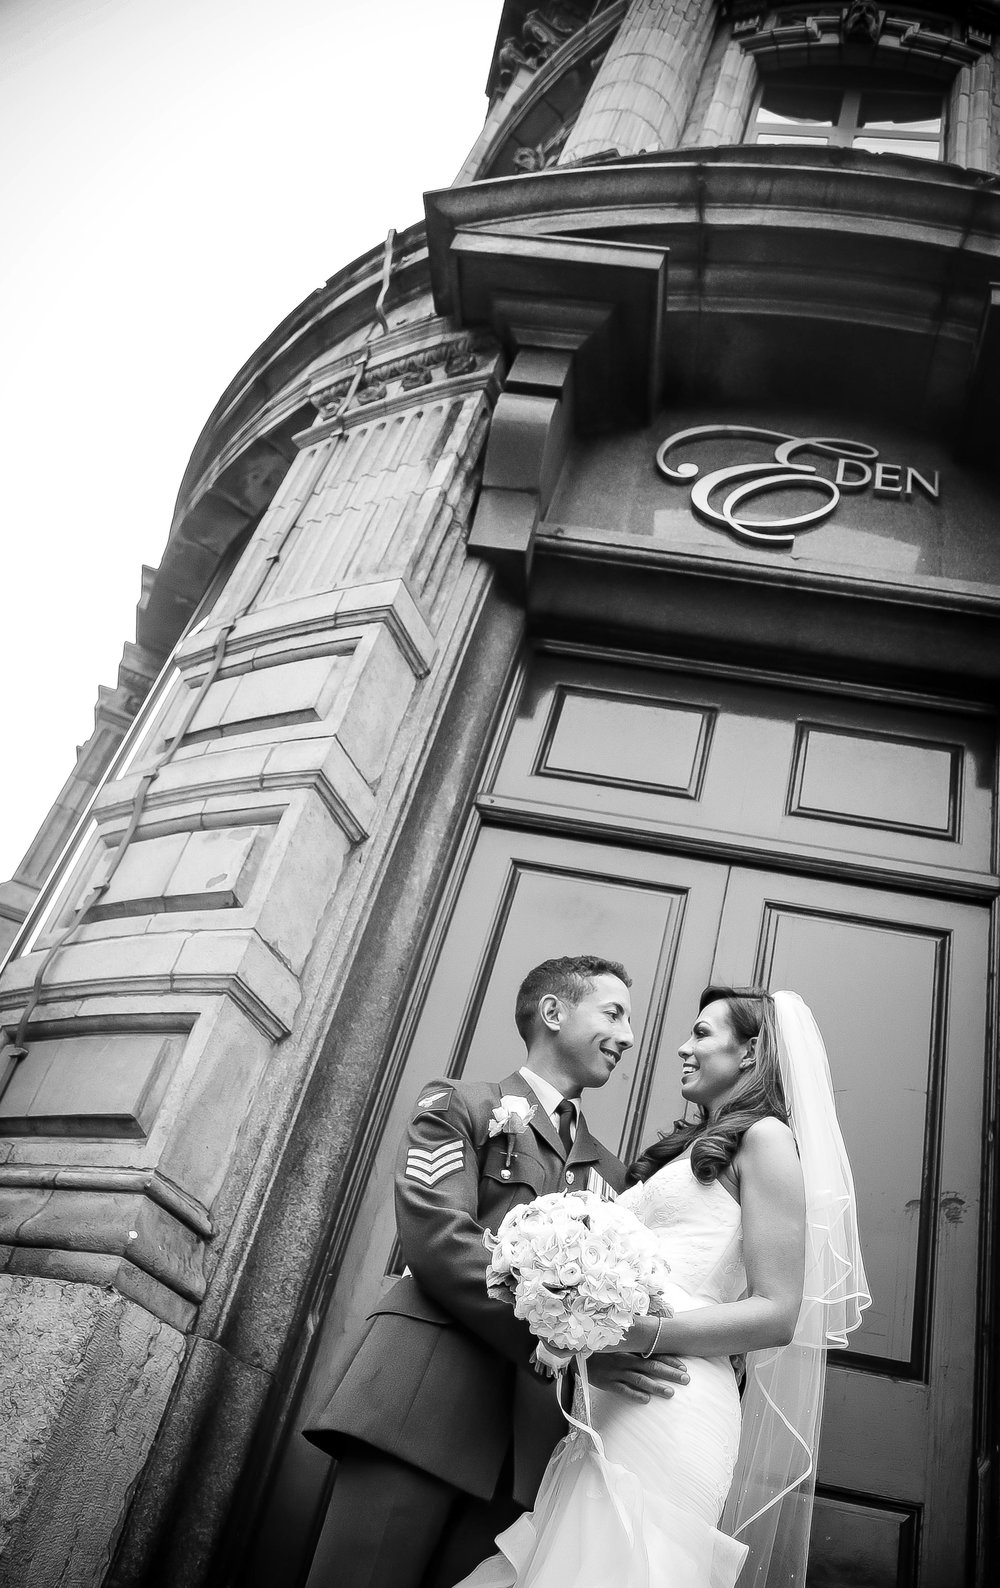 Weddings at the shankly hotel liverpool-86.jpg